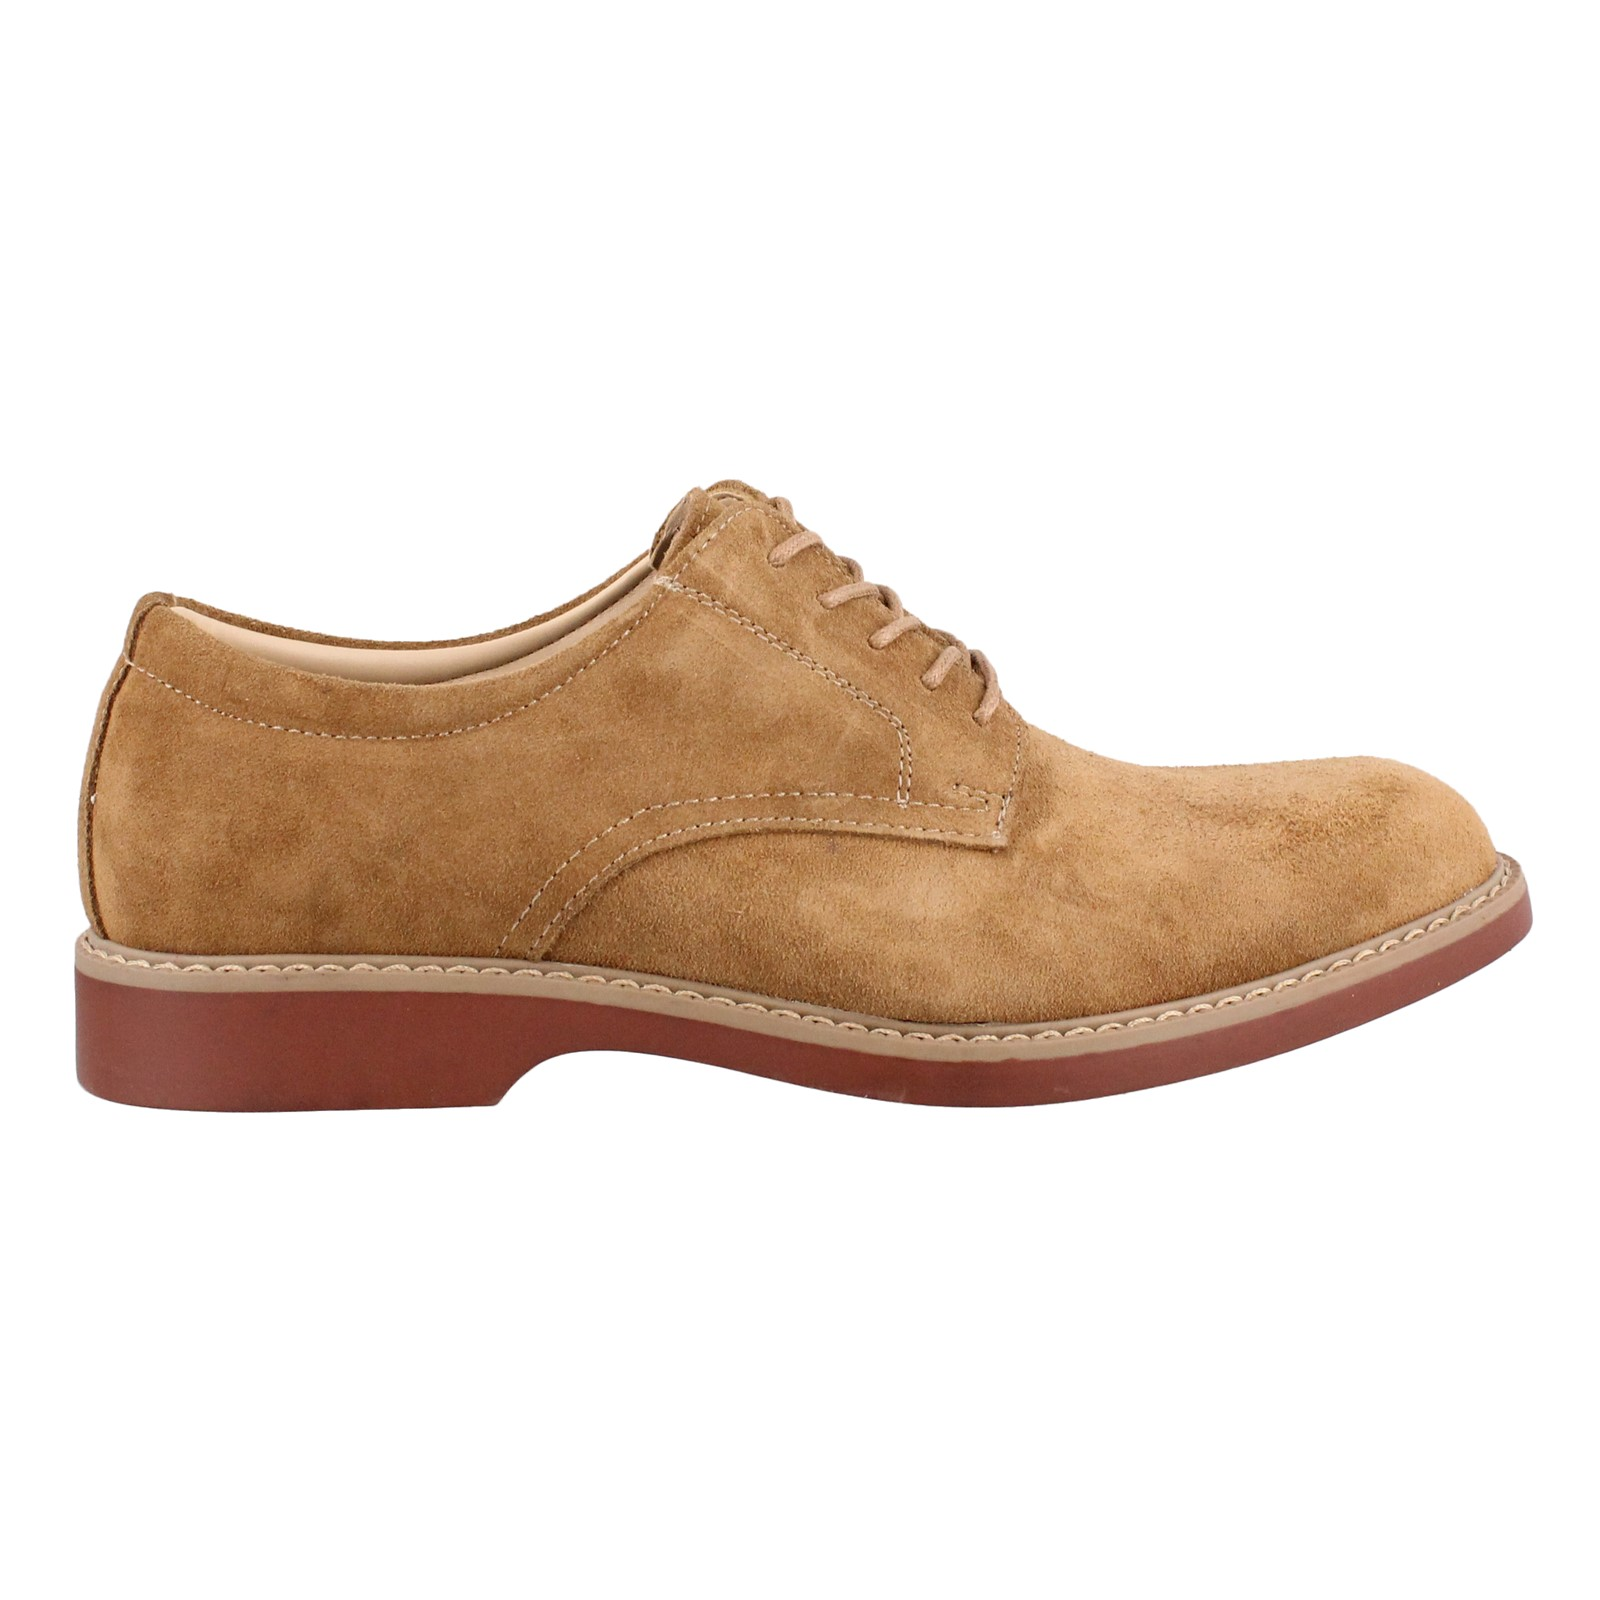 Men's GH Bass and Co, Pasadena Lace up Shoe